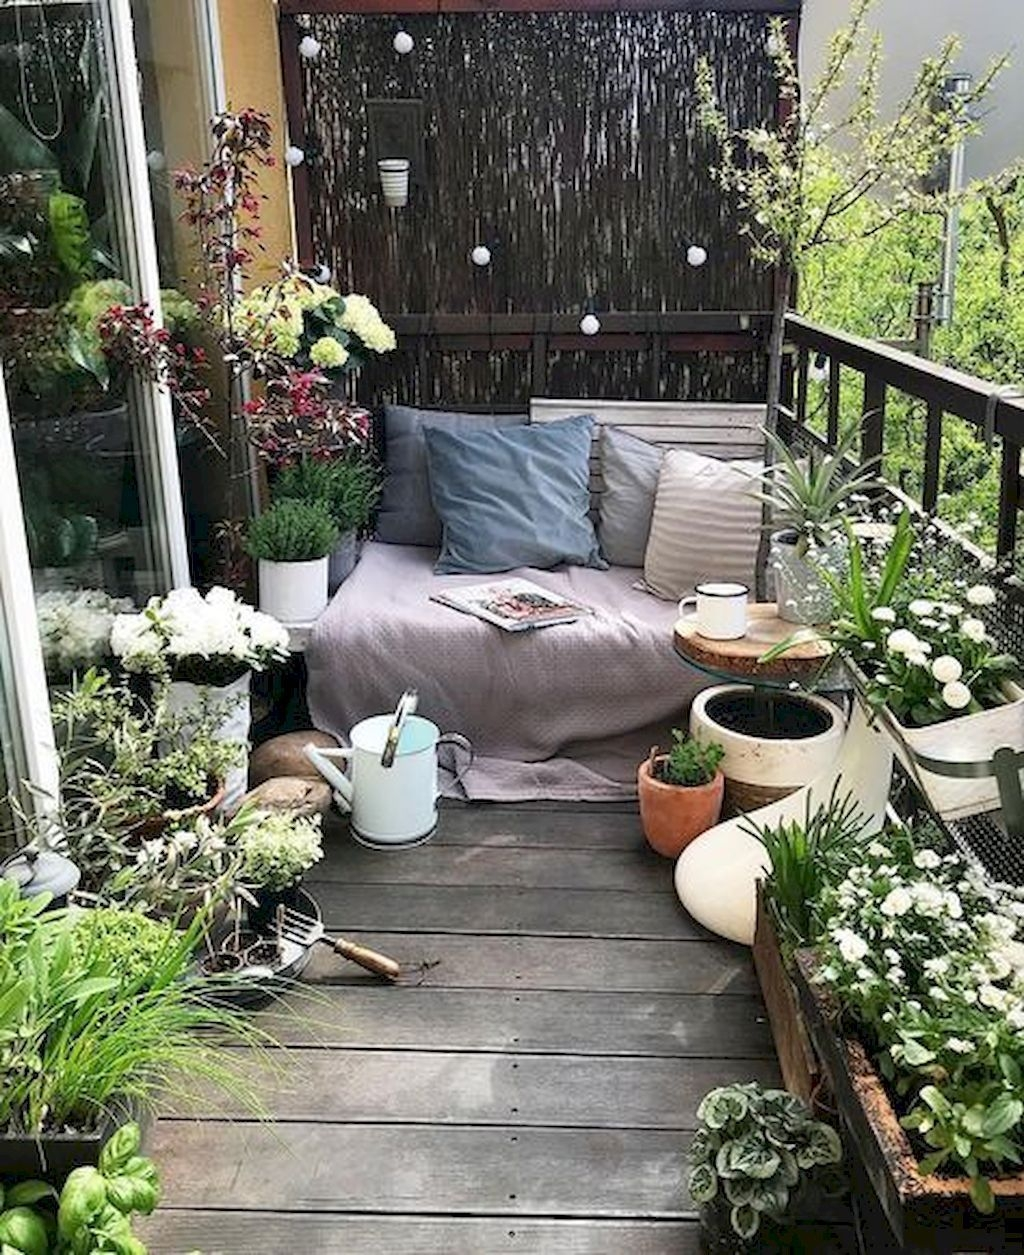 Superb Apartment Balcony Decorating Ideas To Try30